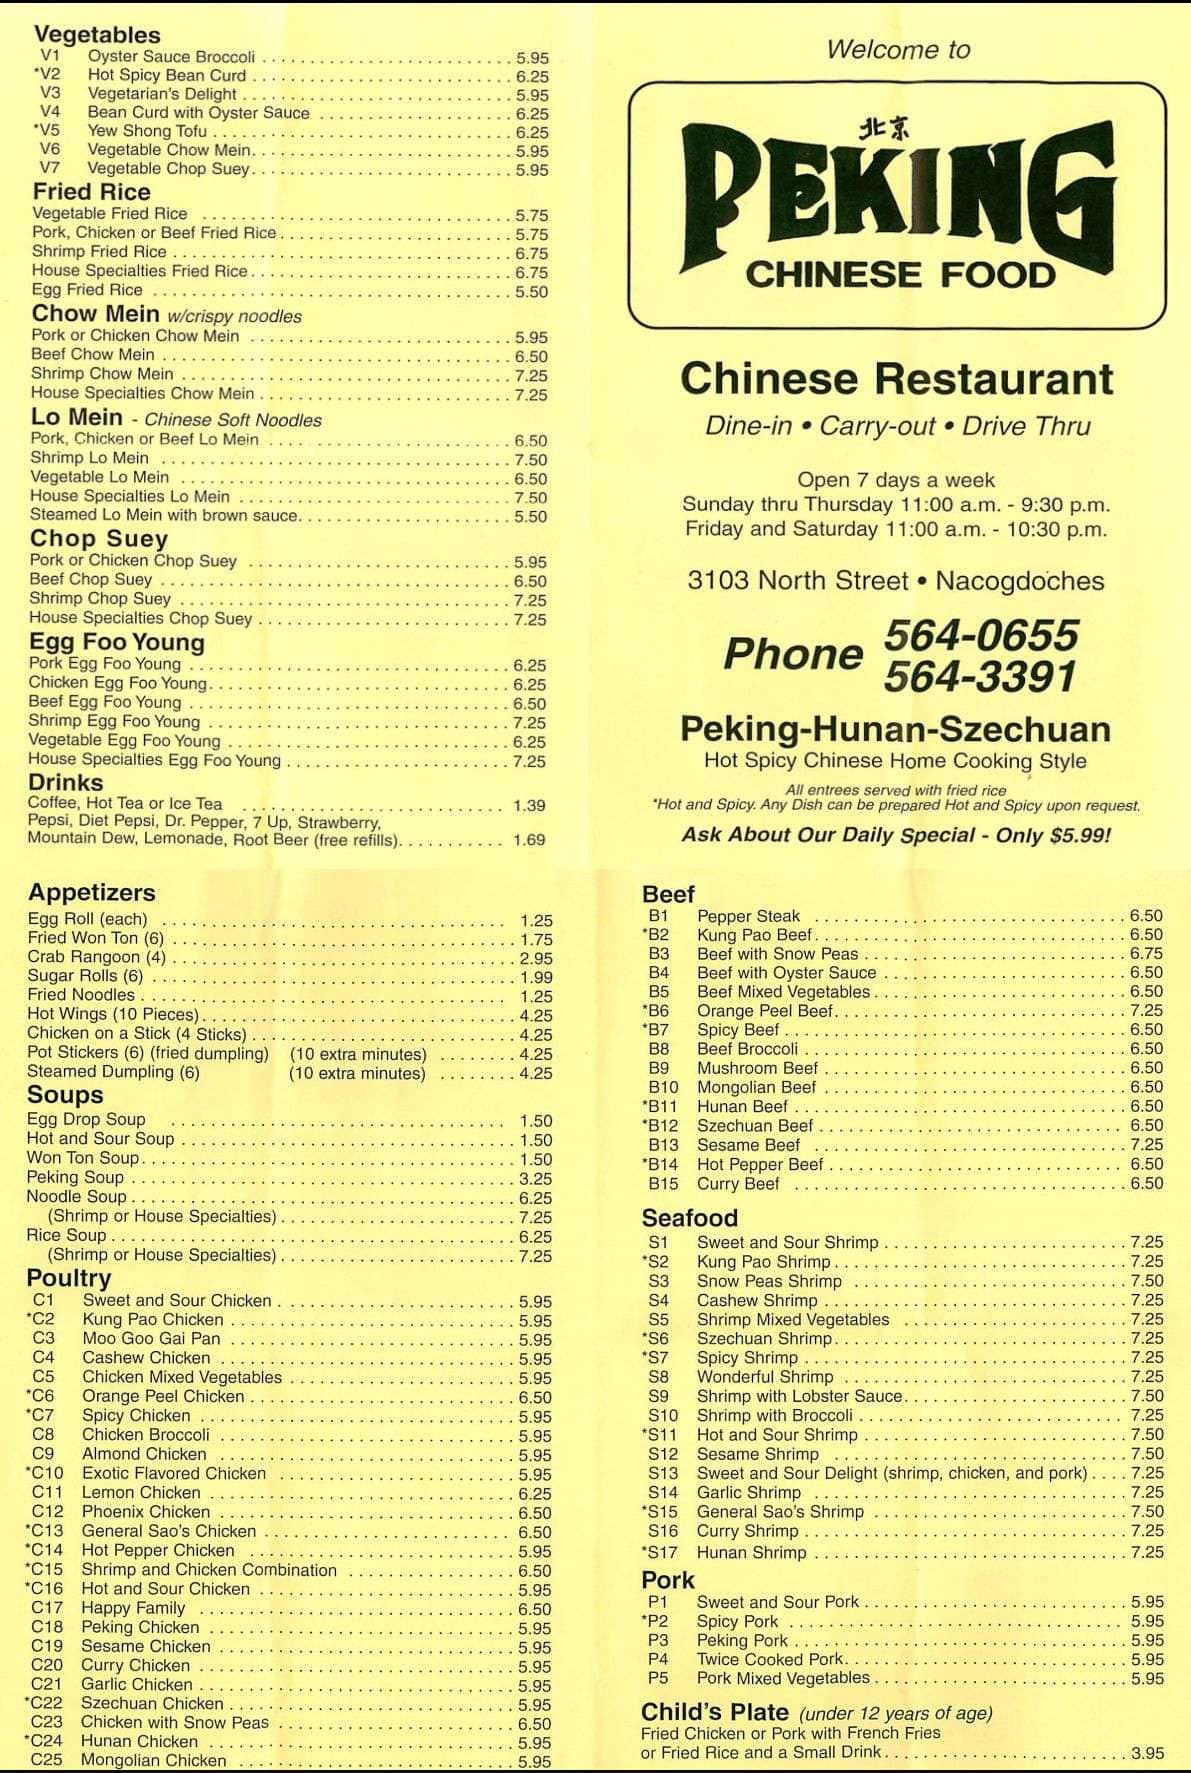 Peking Chinese Restaurant Nacogdoches Menu